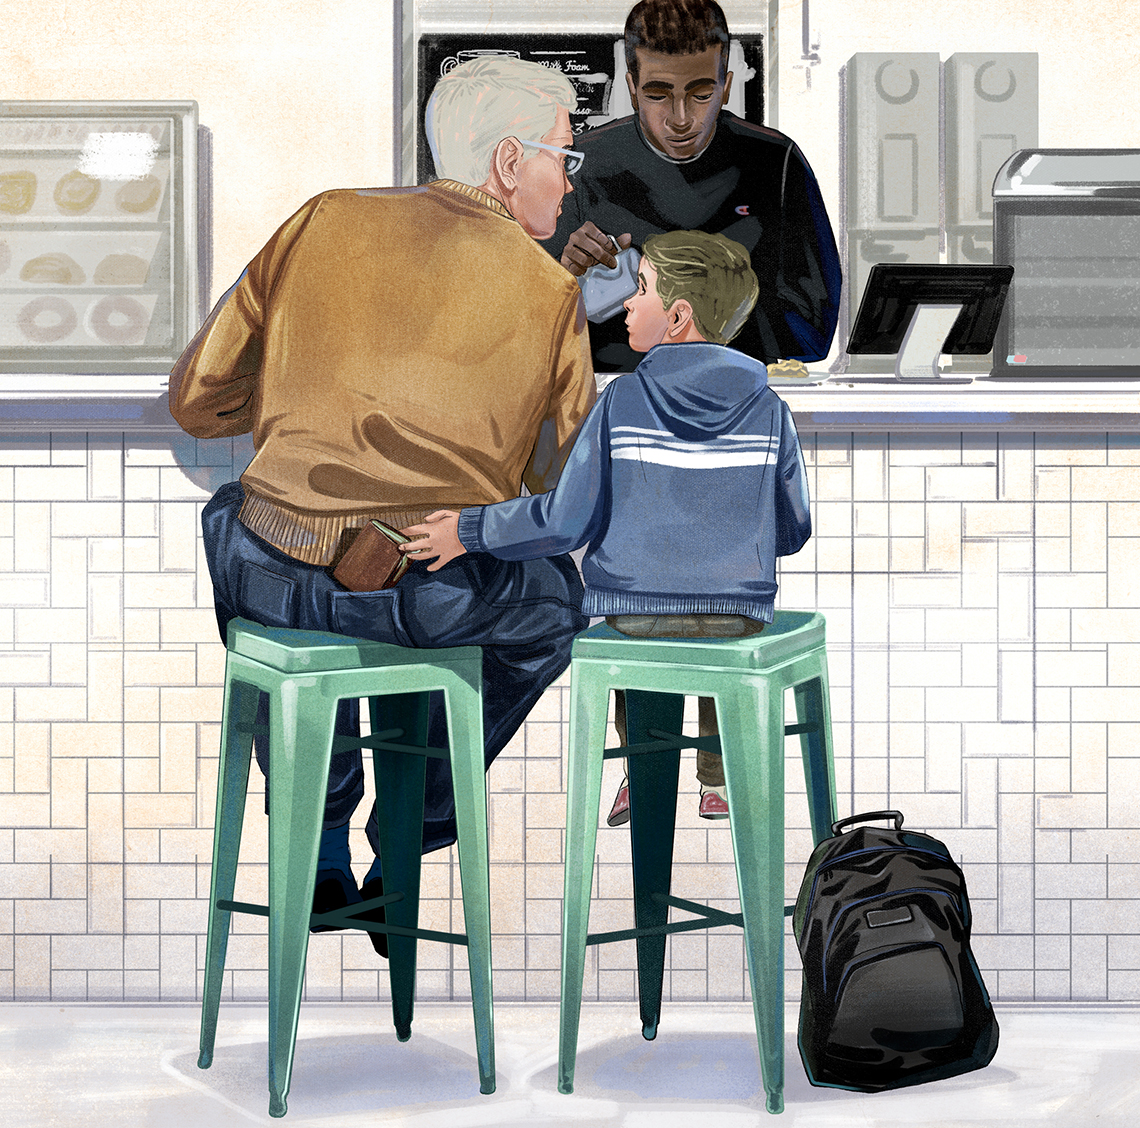 illustration of a boy stealing the wallet of an older man